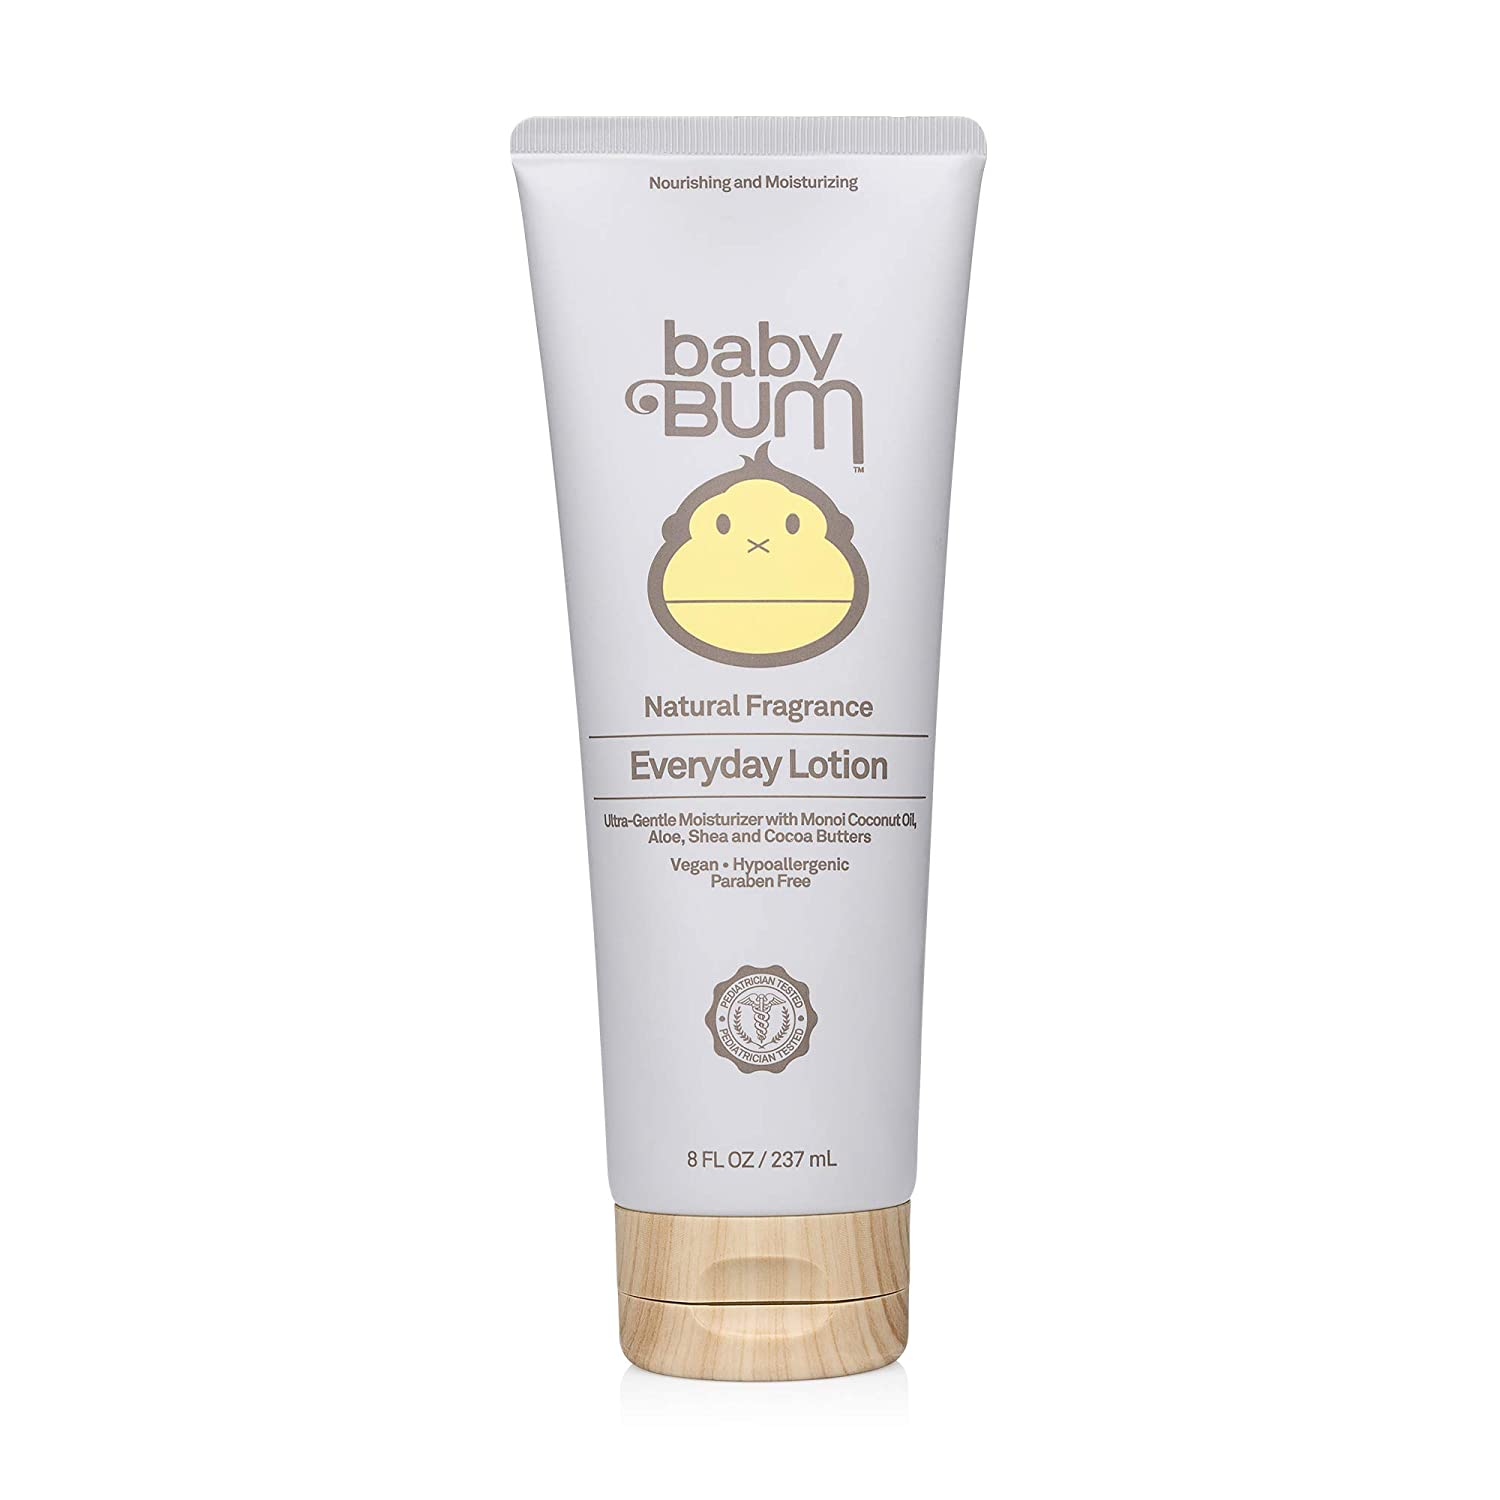 Baby Bum Everyday Lotion | Moisturizing Baby Lotion for Sensitive Skin with Shea and Cocoa Butter | Natural Fragrance | Gluten Free - 8 OZ Bottle